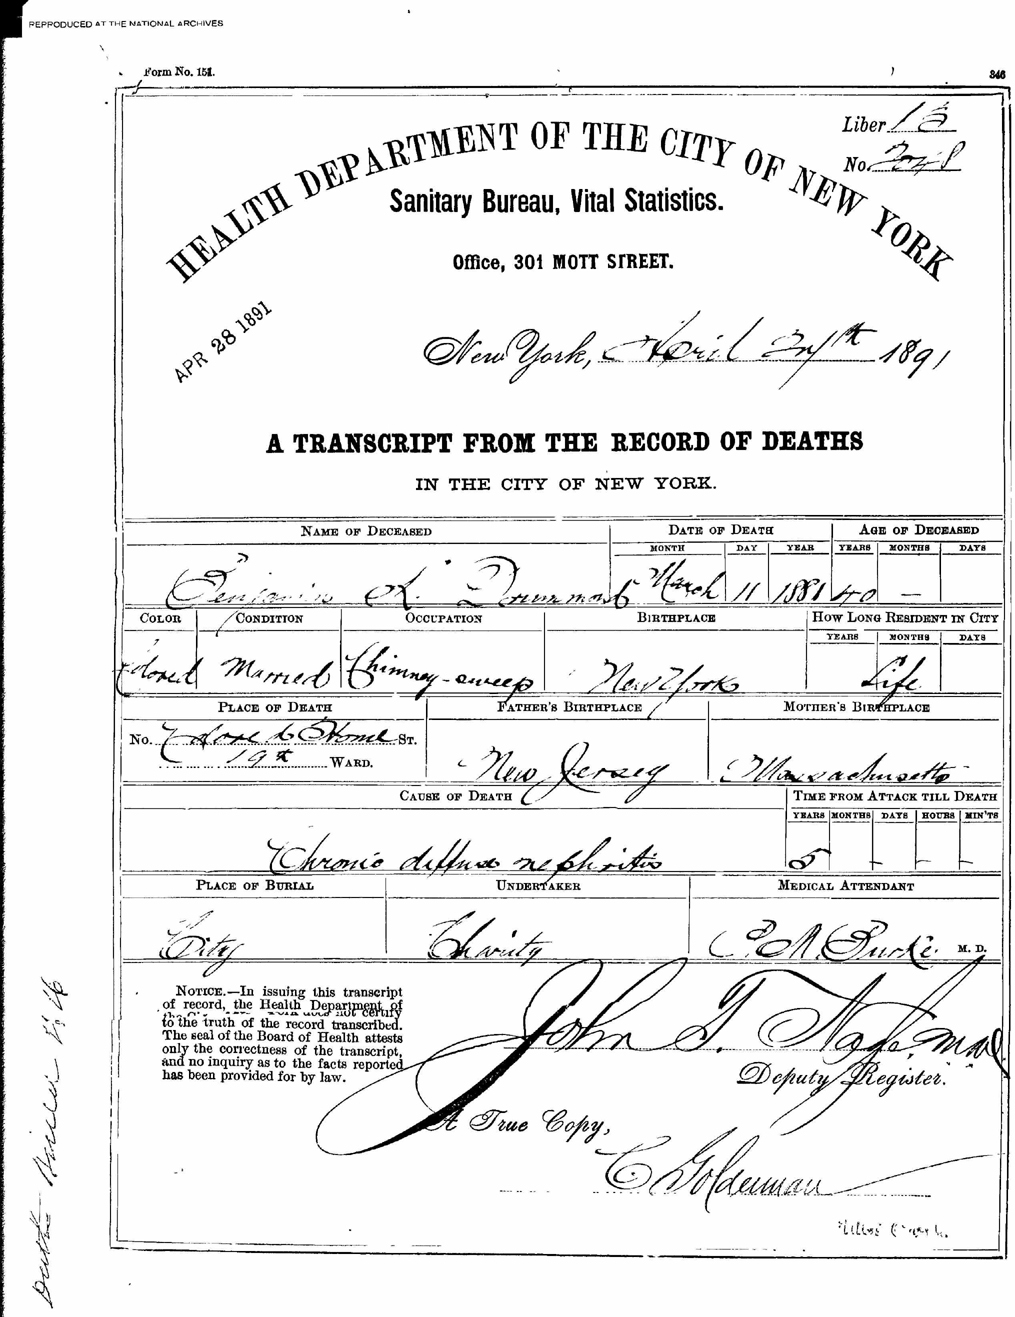 The Death Certificate for Benjamin Drummond, the first patient admitted into the Naval Hospital, Washington City, when it opened on October 1, 1866.